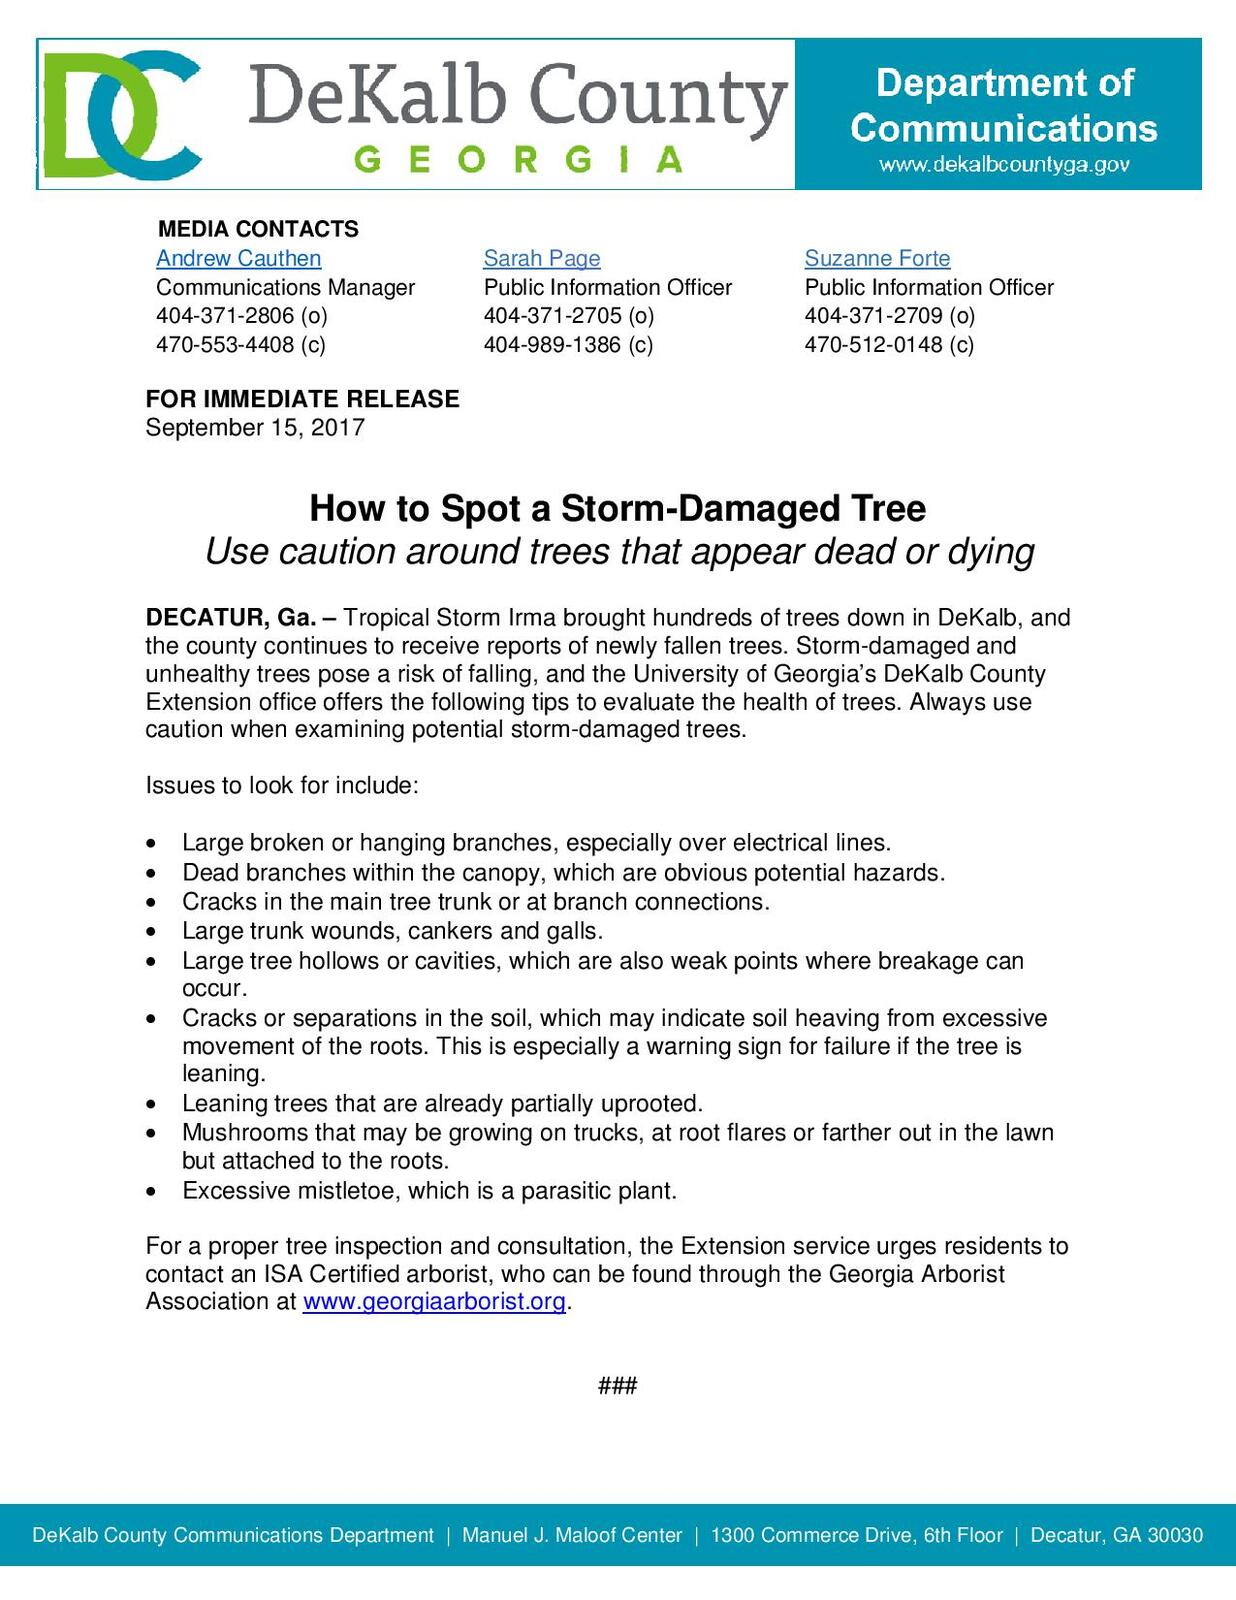 How to Spot a Storm-Damaged Tree (DeKalb County Police Department) |  Nextdoor